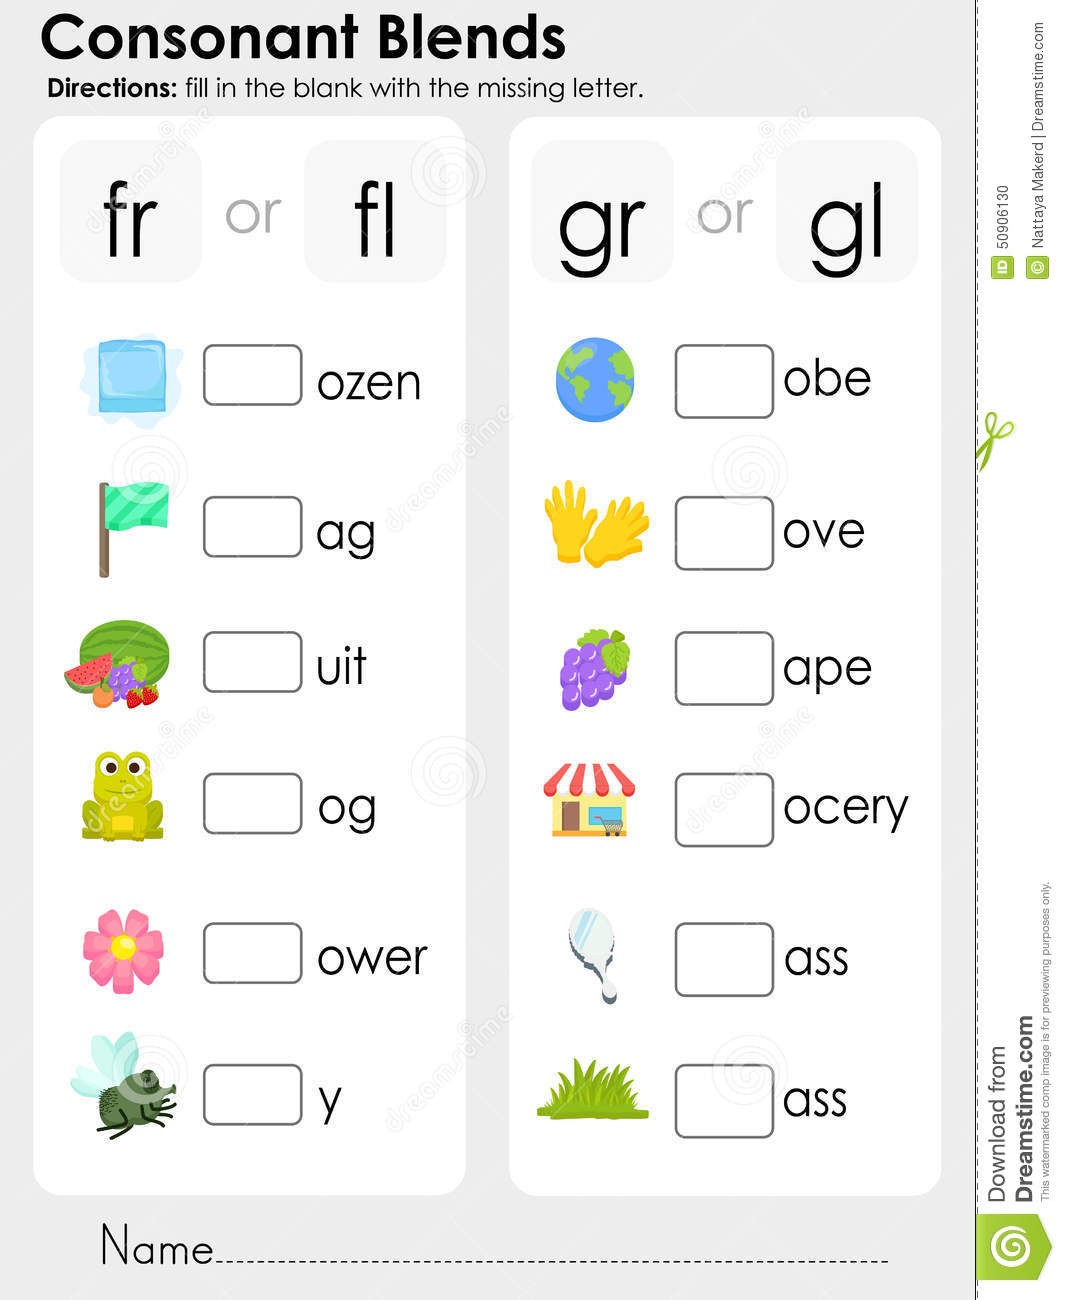 worksheet S Blends Worksheet consonant blends missing letter worksheet for education stock preschool grass